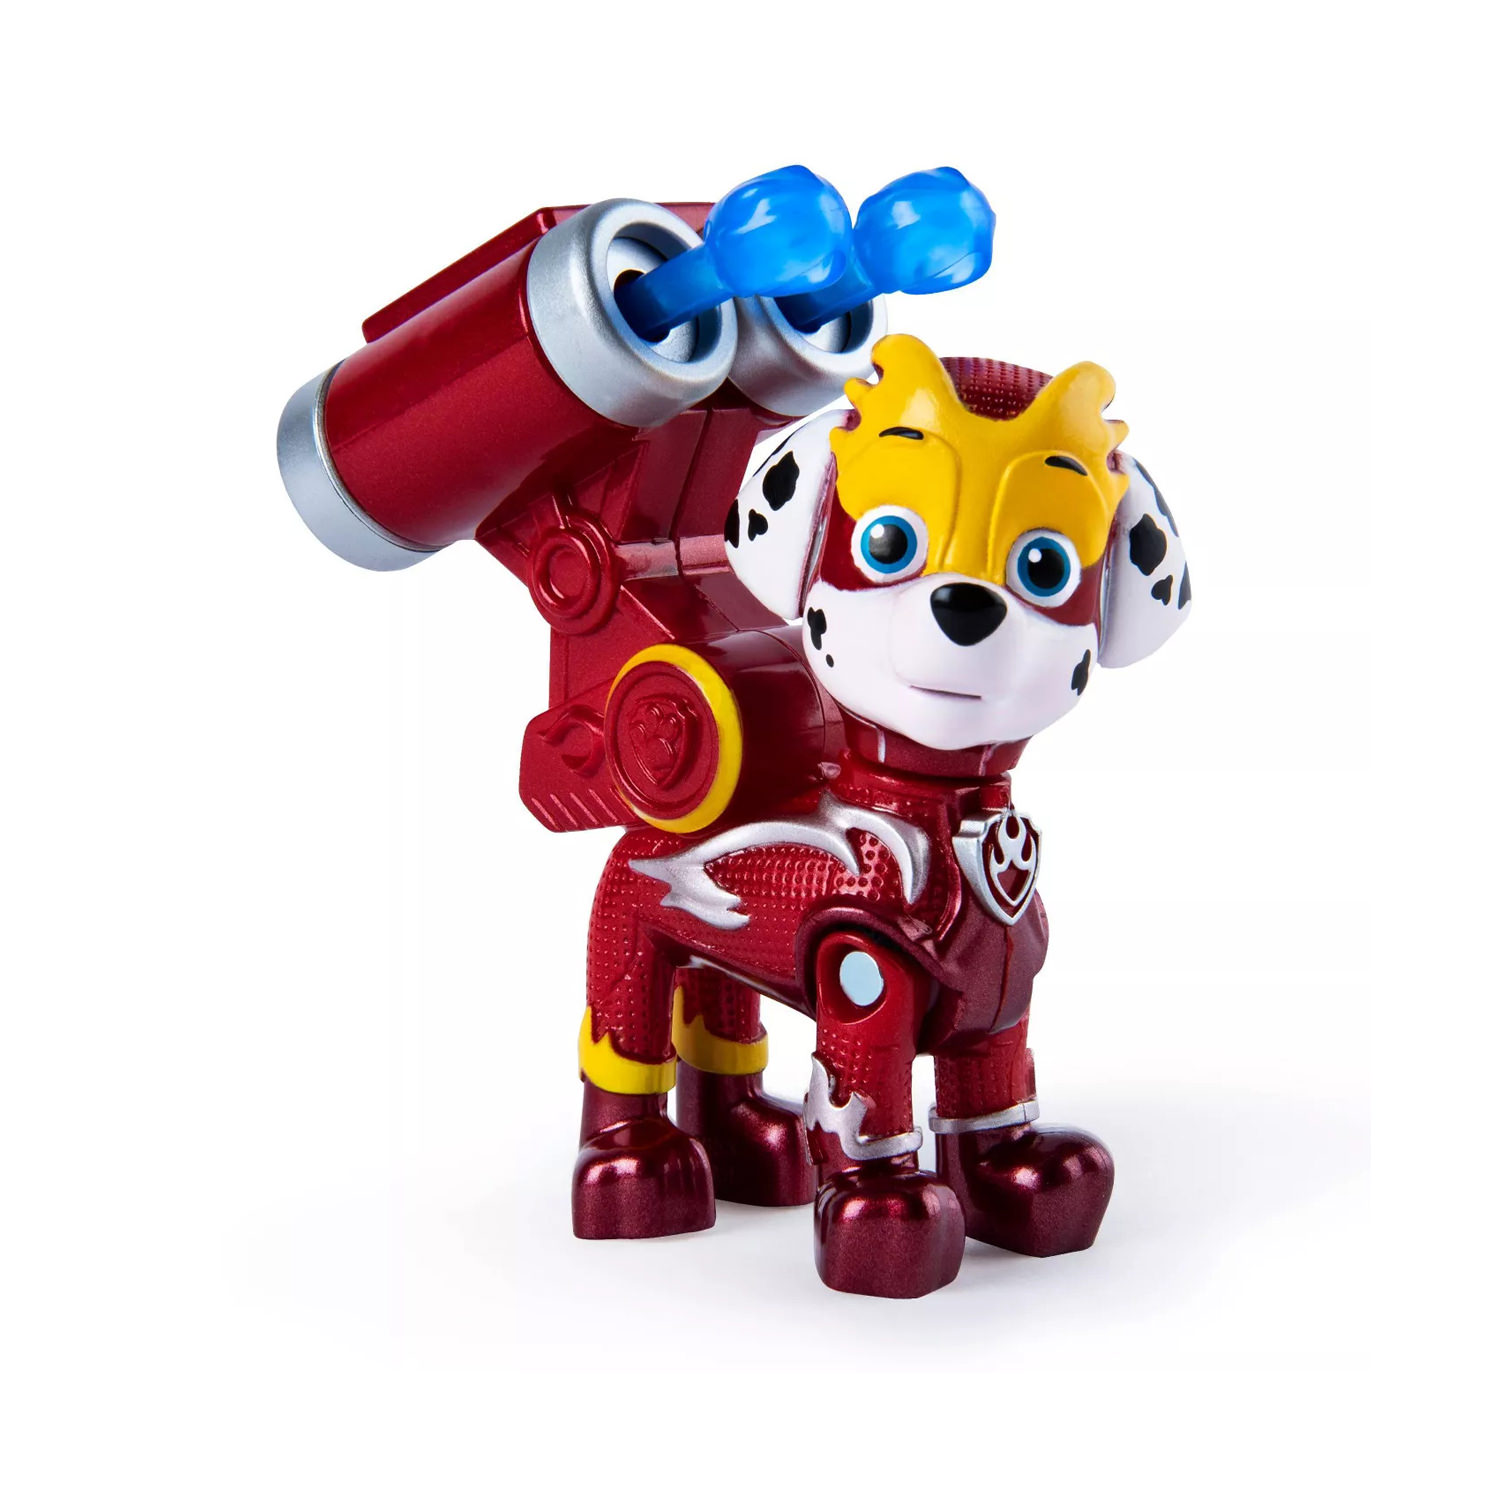 PAW Patrol Mighty Pups Super Paws Marshall Action Figures New